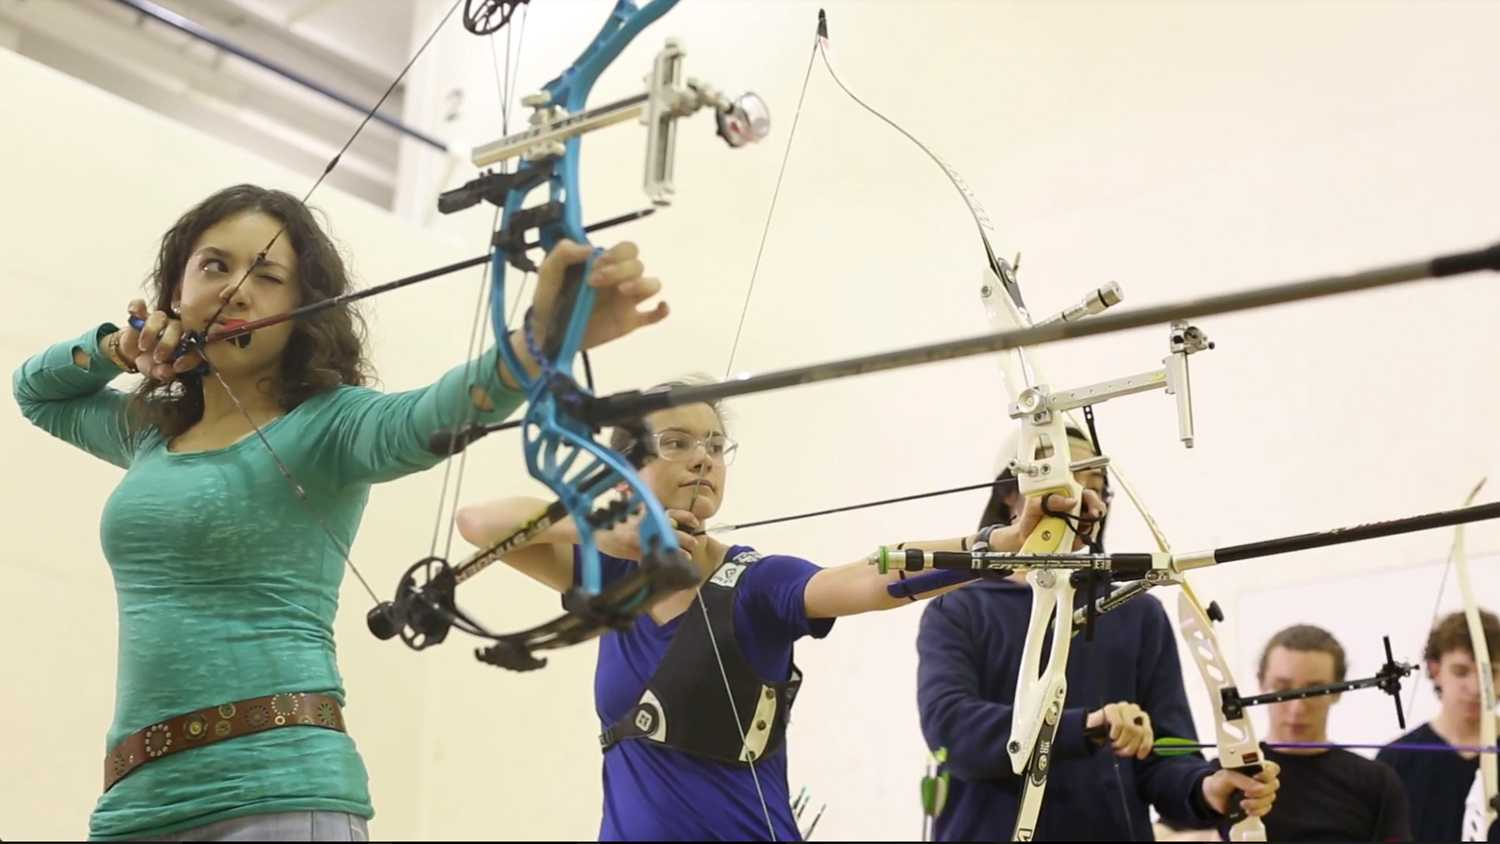 Kira Zack (left) practices with Pitt's archery team during the 2017-18 school year. (Photo by Chris Preksta courtesy of Julia Lam)